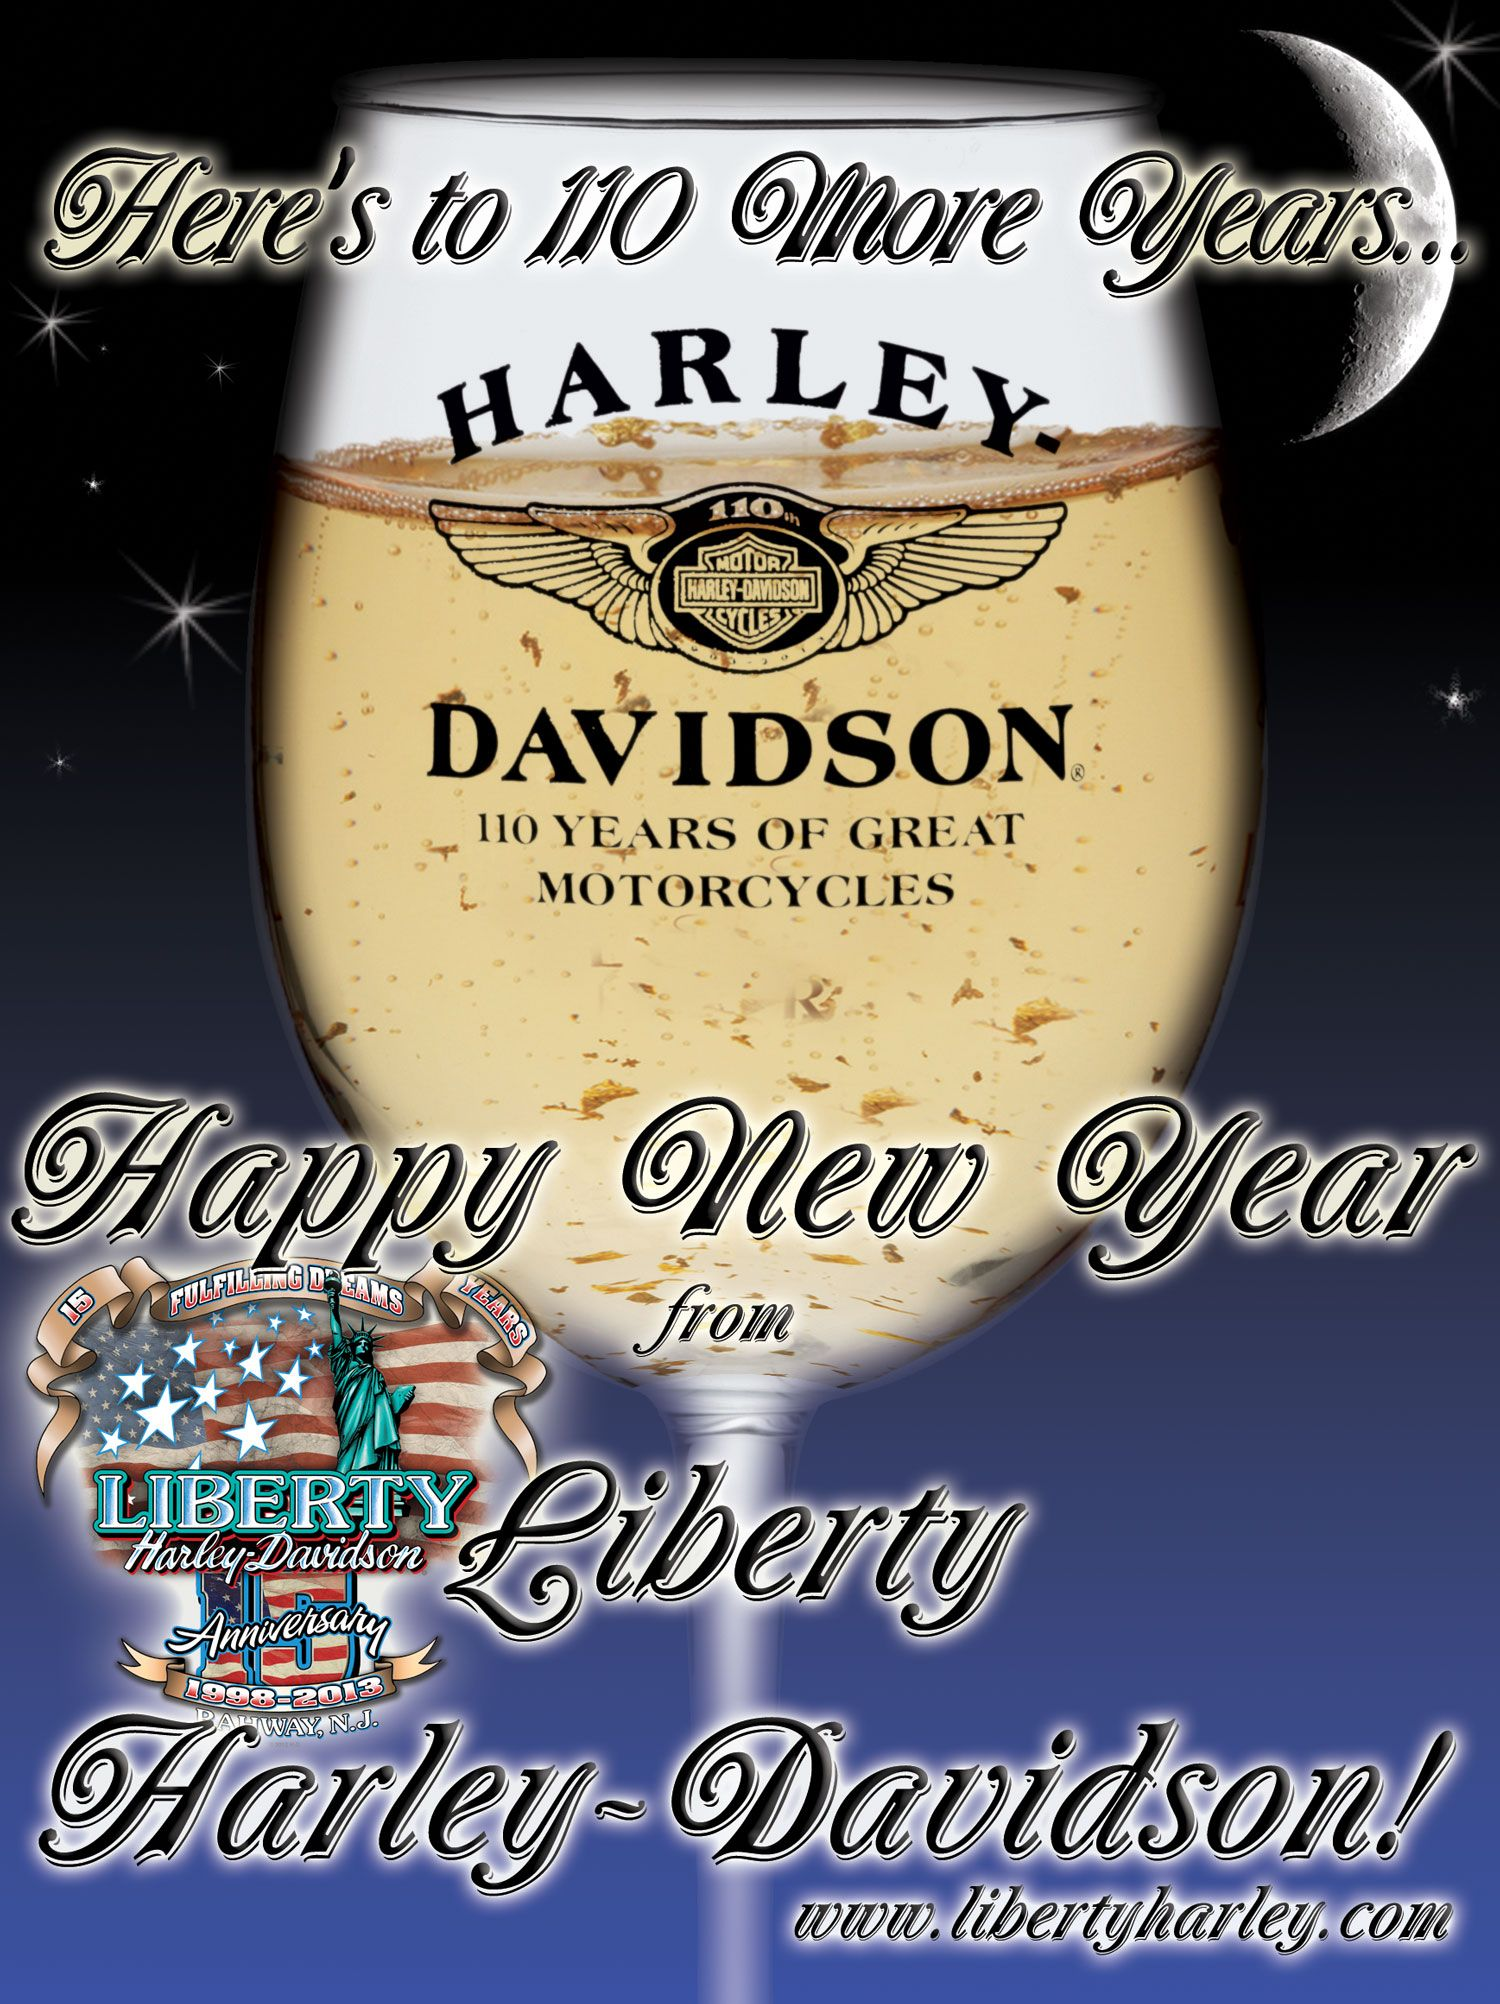 happy new year everyone from liberty harley davidson